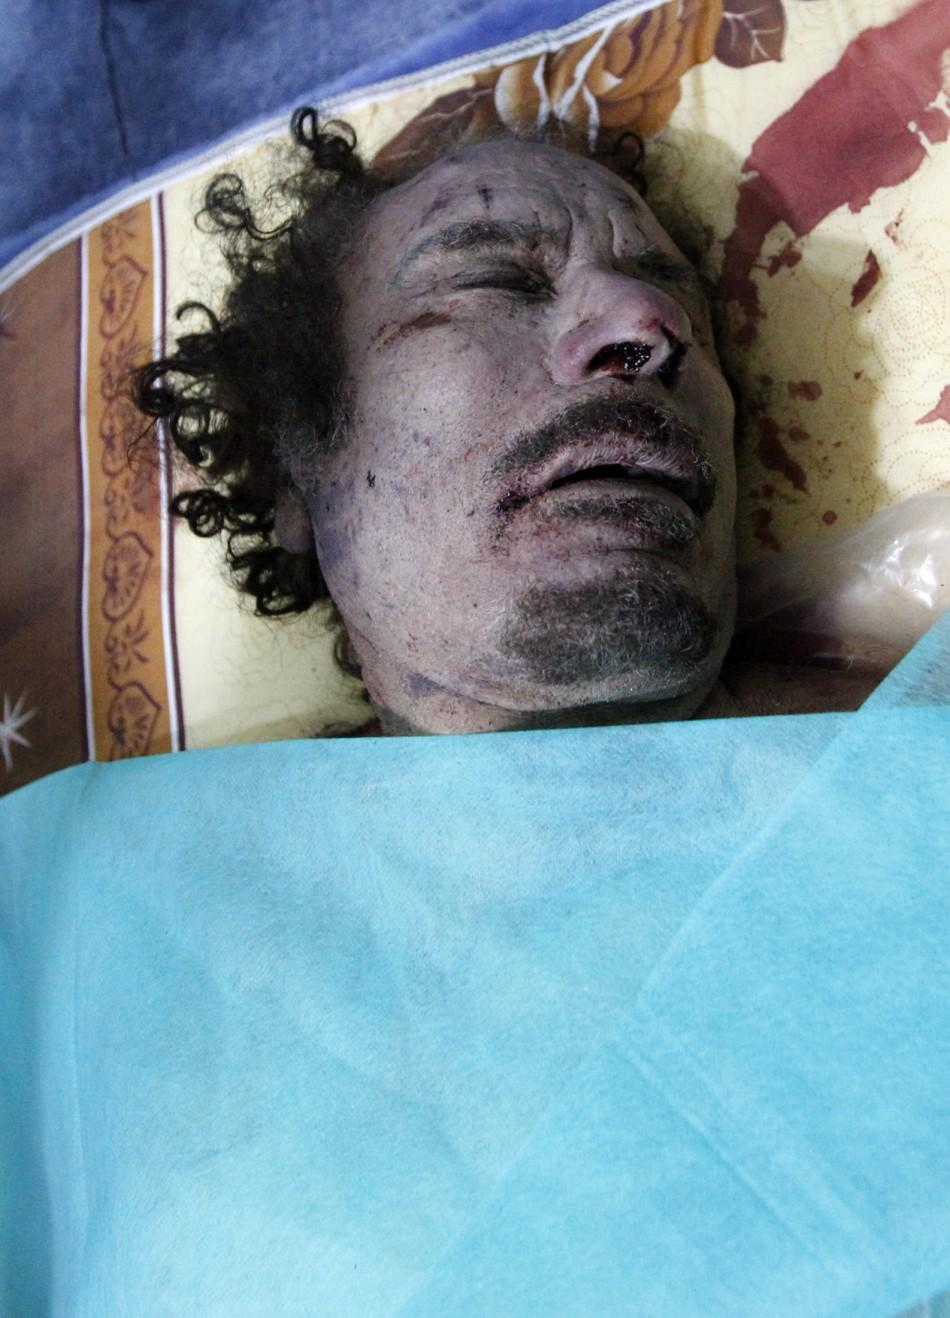 The body of Muammar Gaddafi is seen at a house in Misrata October 20, 2011